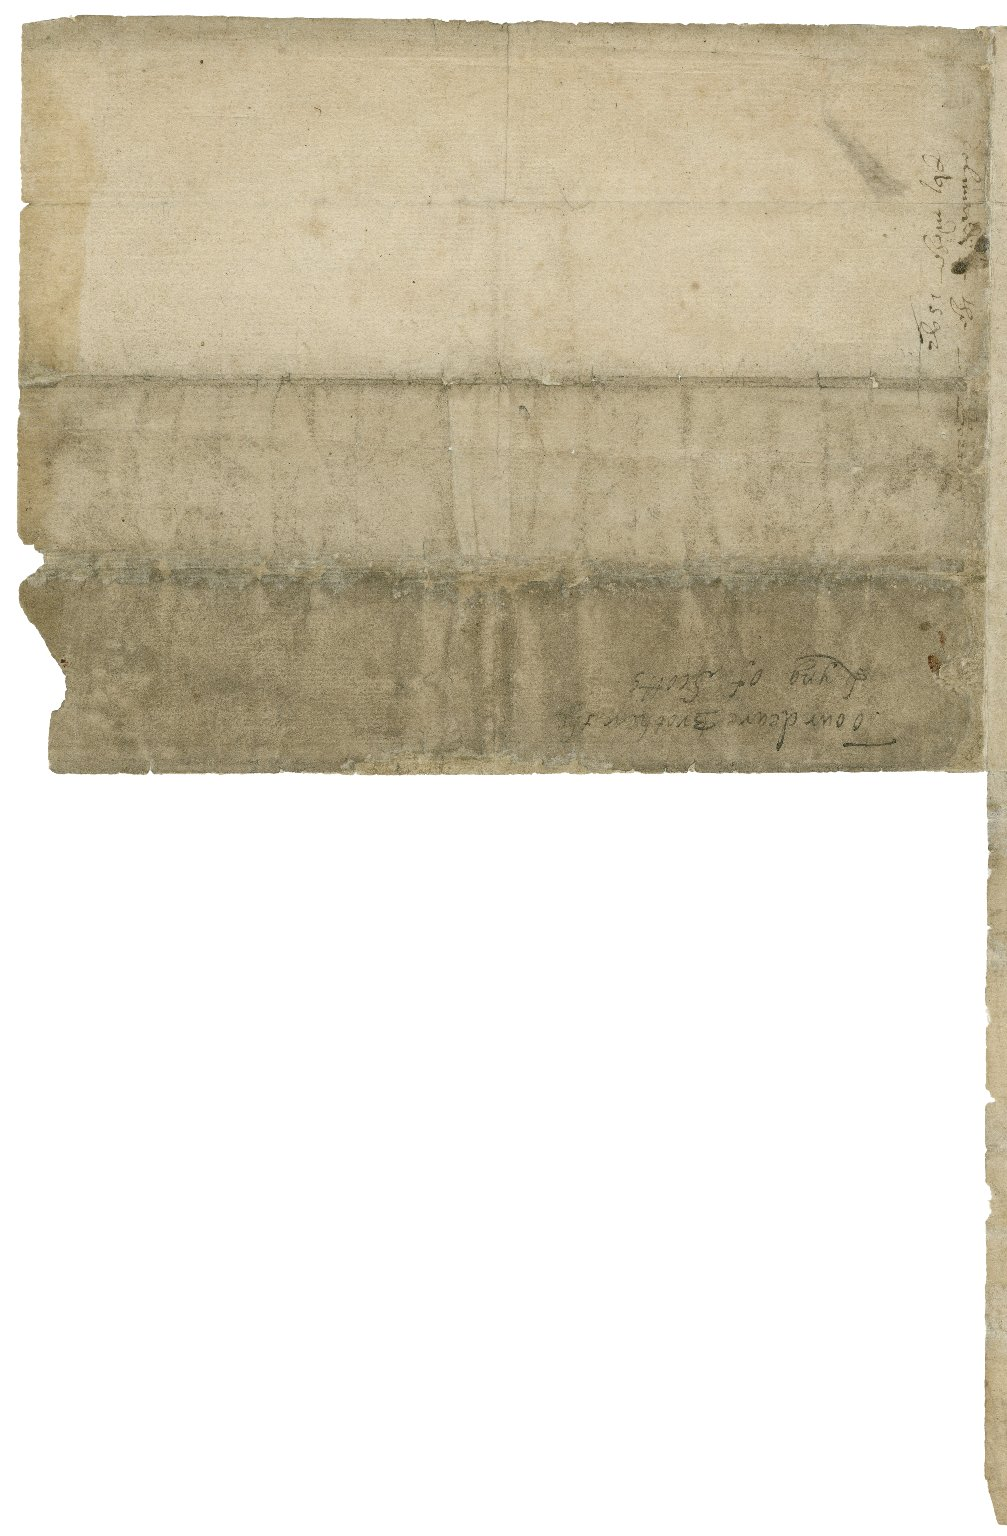 Autograph letter signed from Elizabeth I, Queen of England, to James VI, King of Scotland [manuscript]